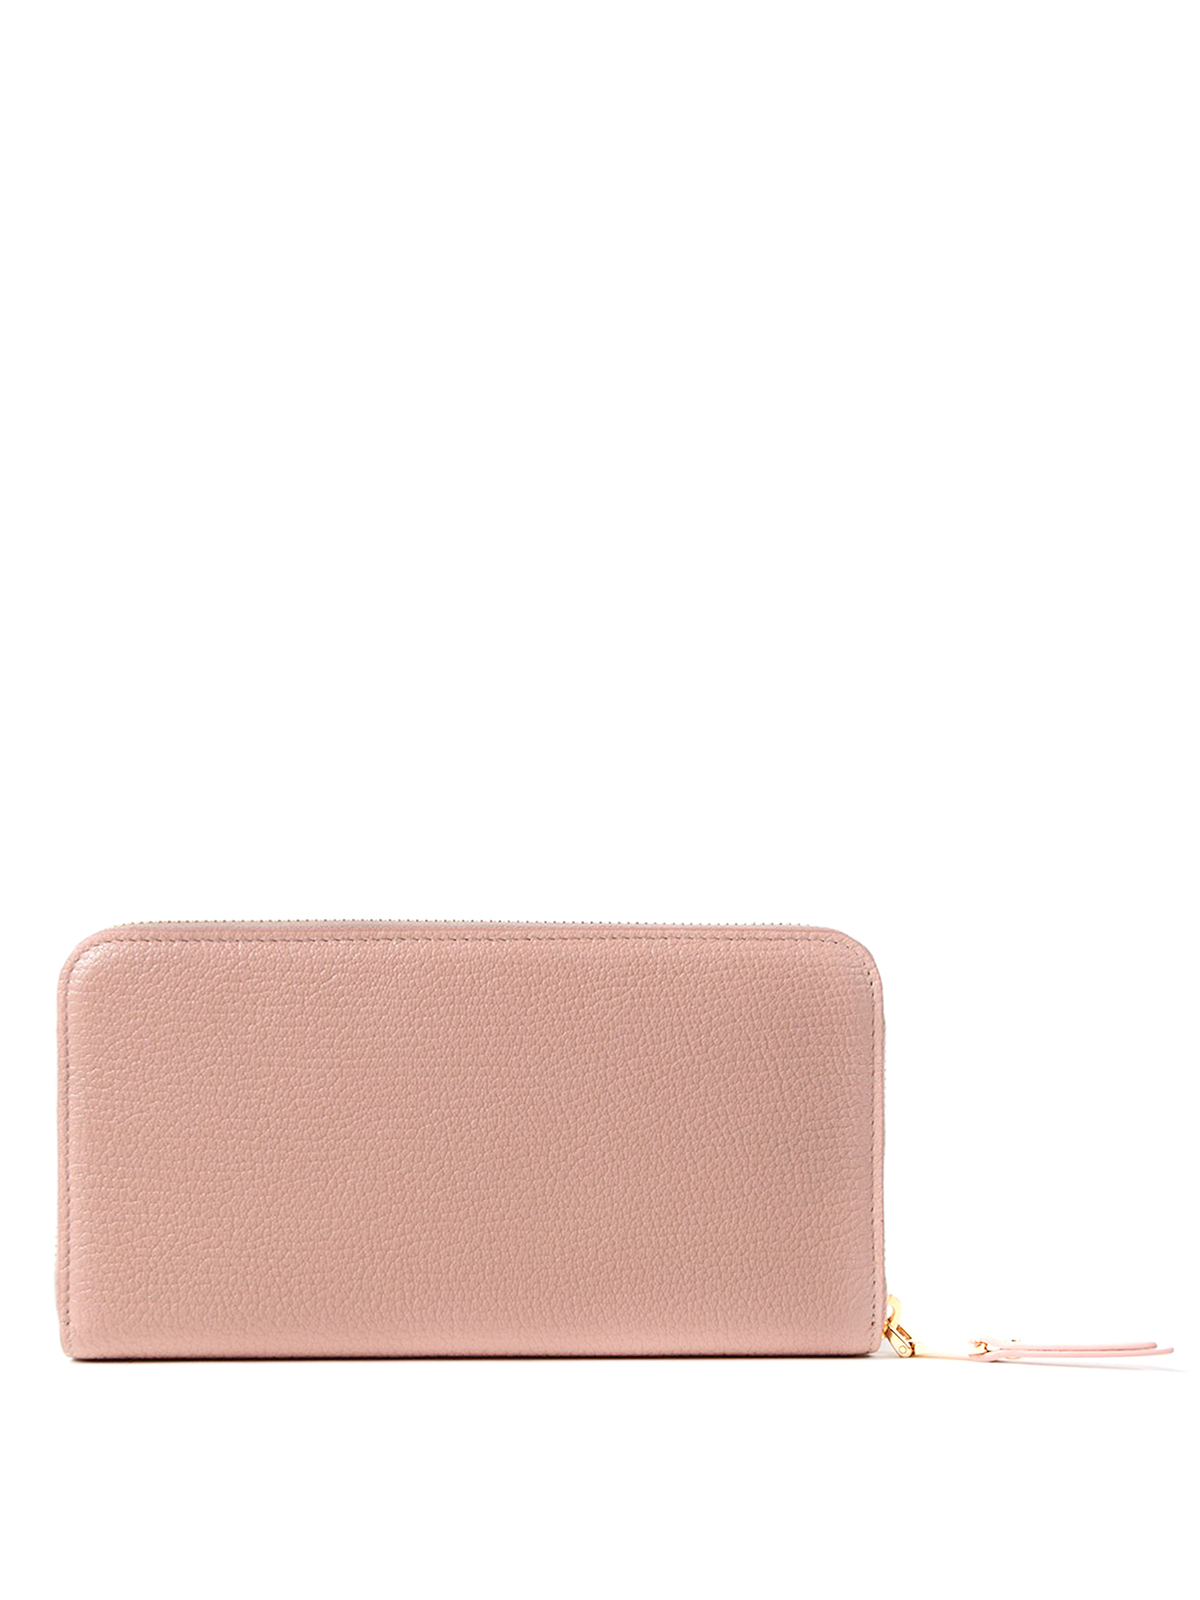 iKRIX MIU MIU  wallets   purses - Leather zip around wallet with bow b657cb1e675be